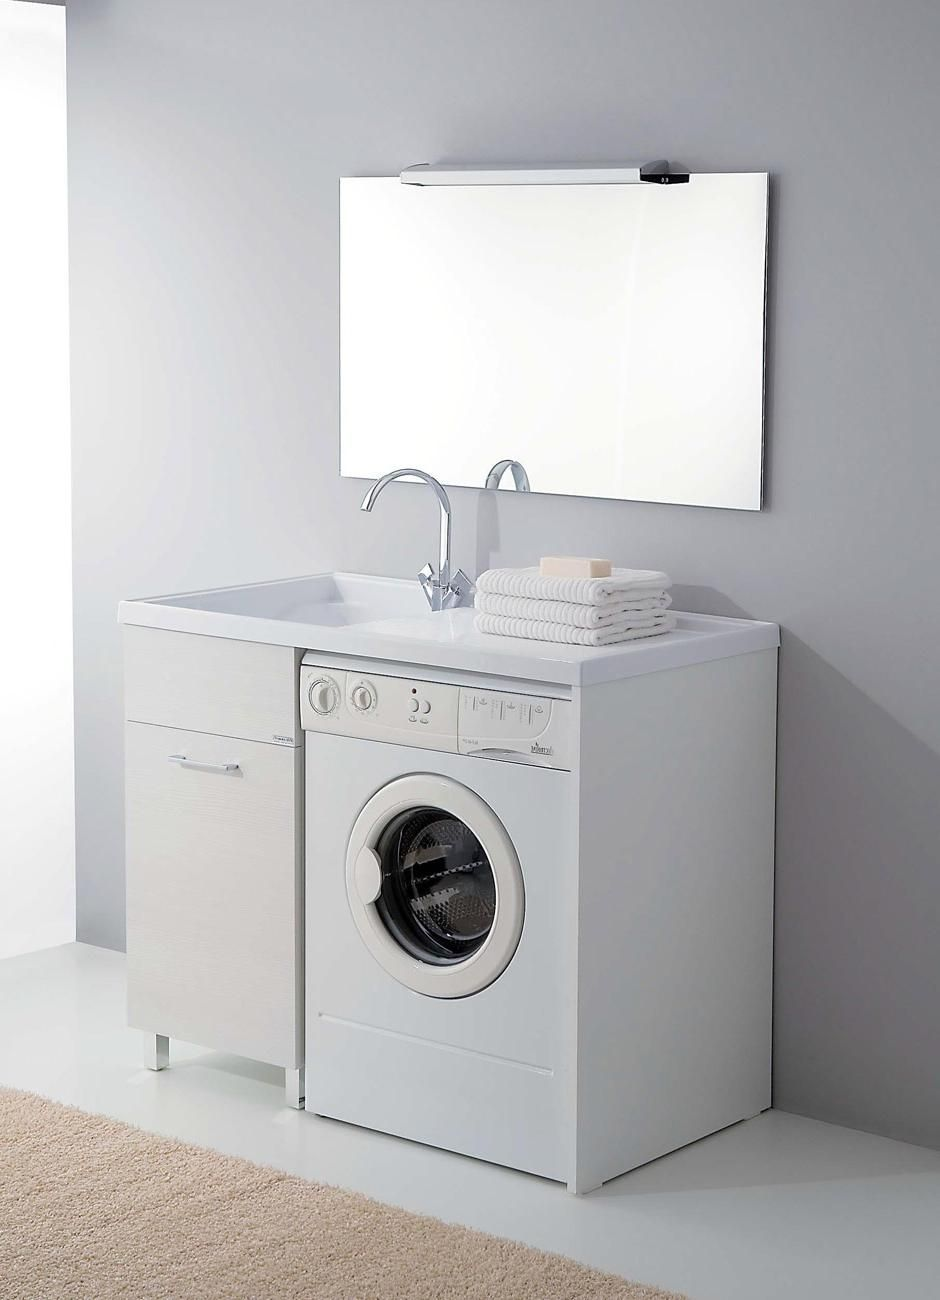 Simple Laundry Sink Design Above Table As Well Comfortable Washing